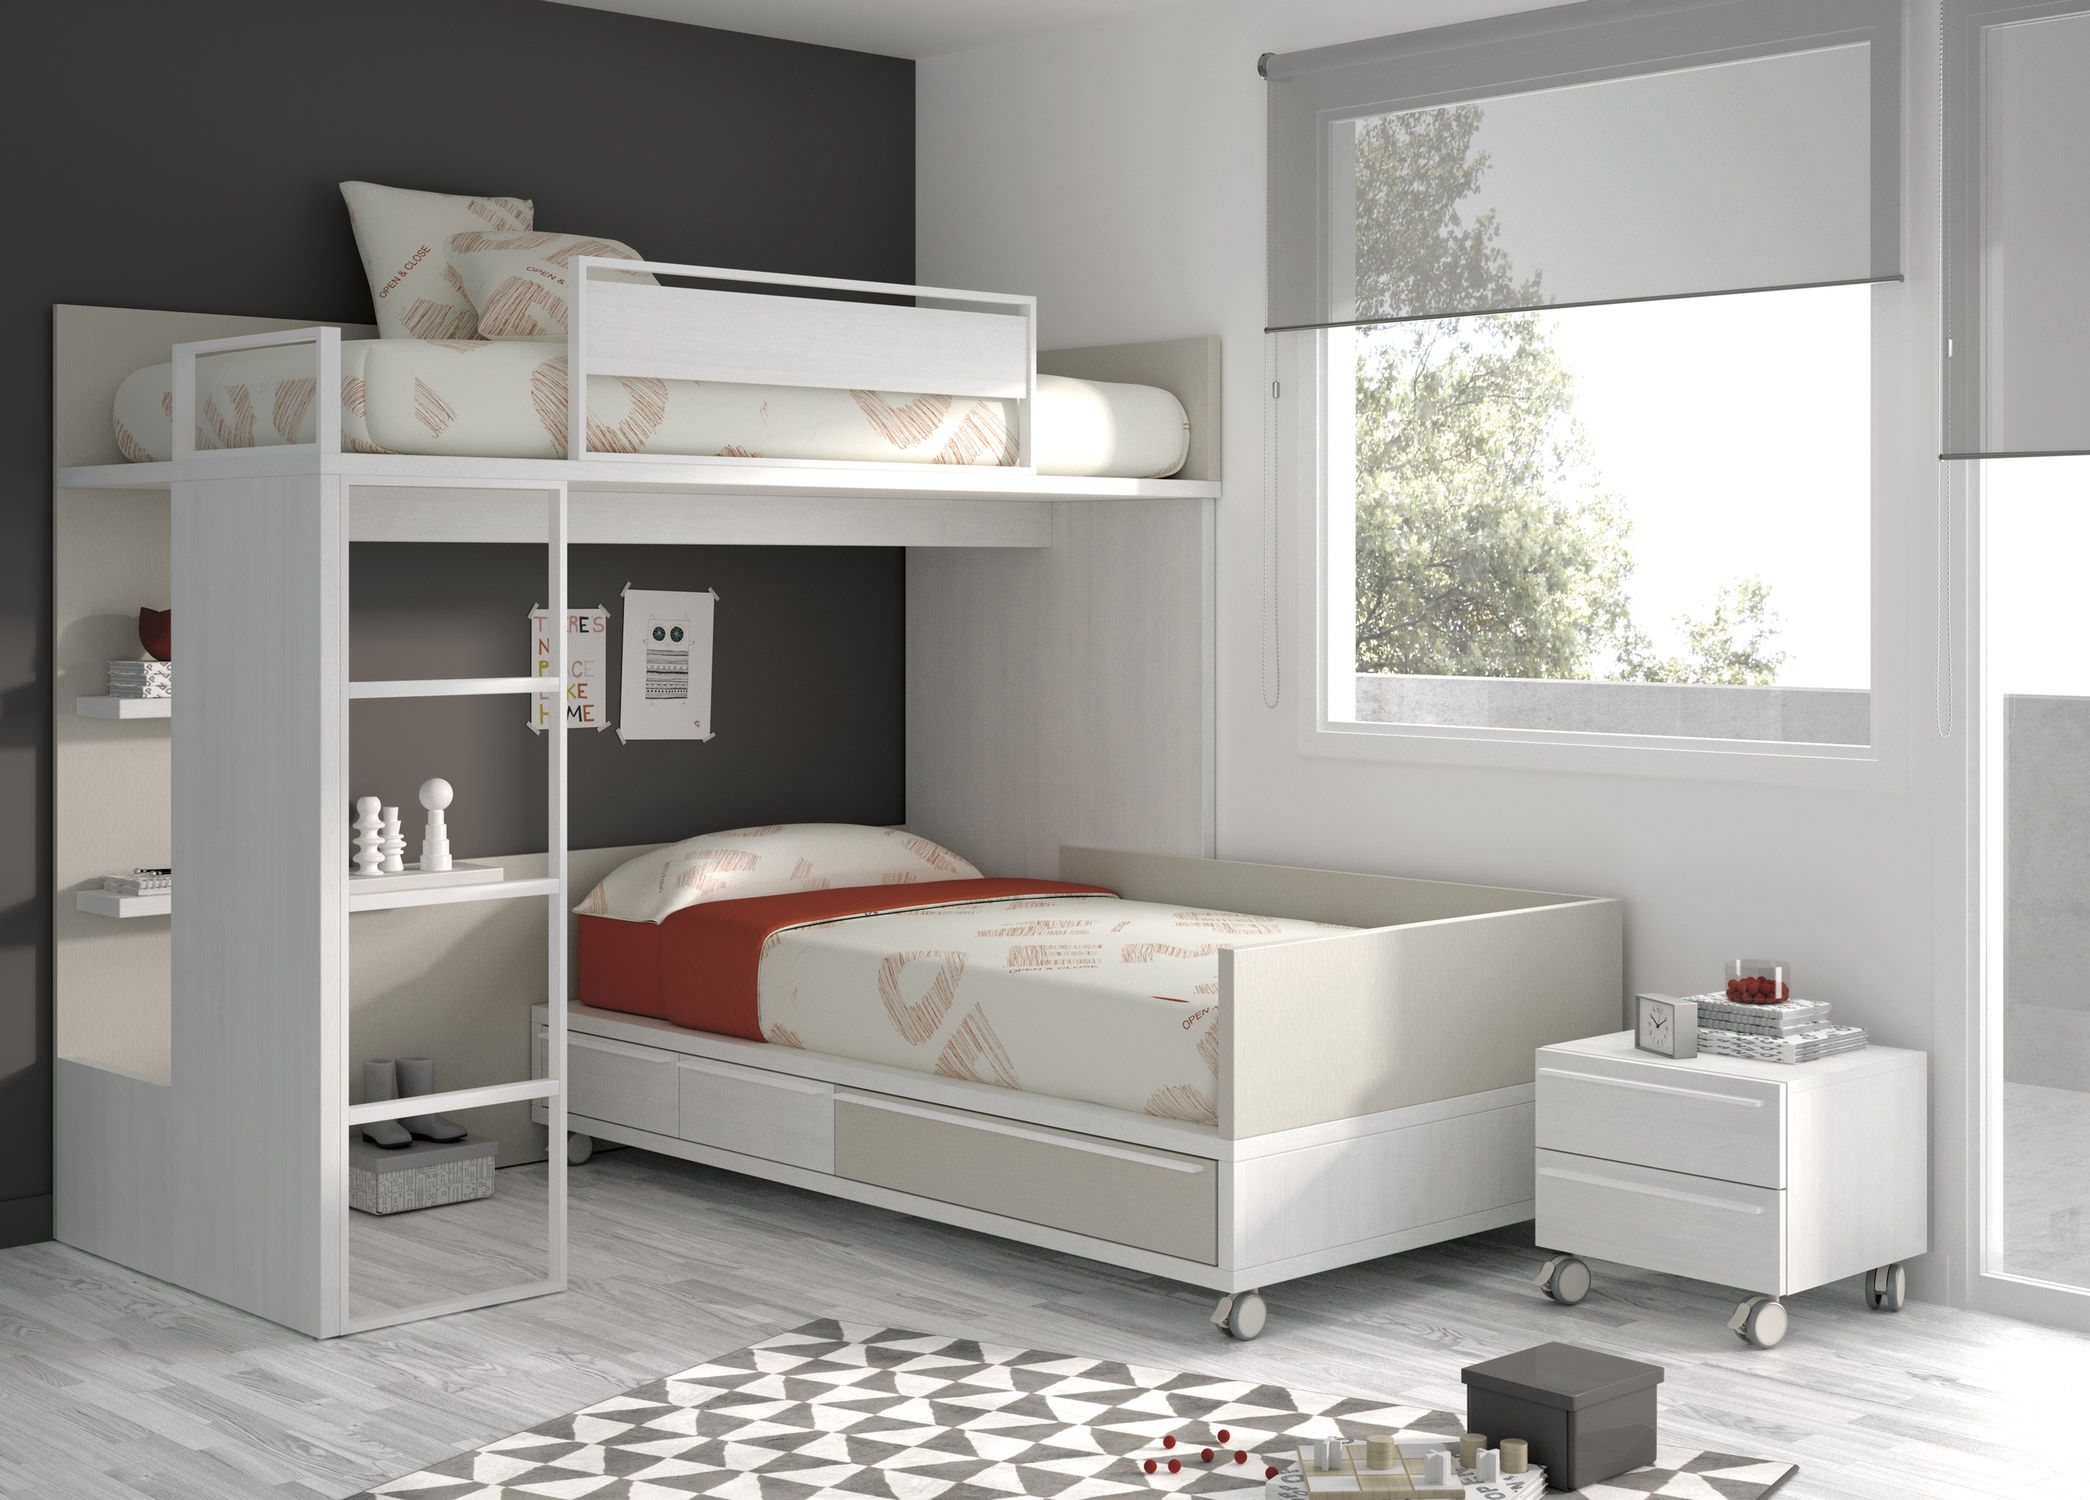 Best Single Bed Corner Bunk Contemporary With Shelf Touch 400 x 300